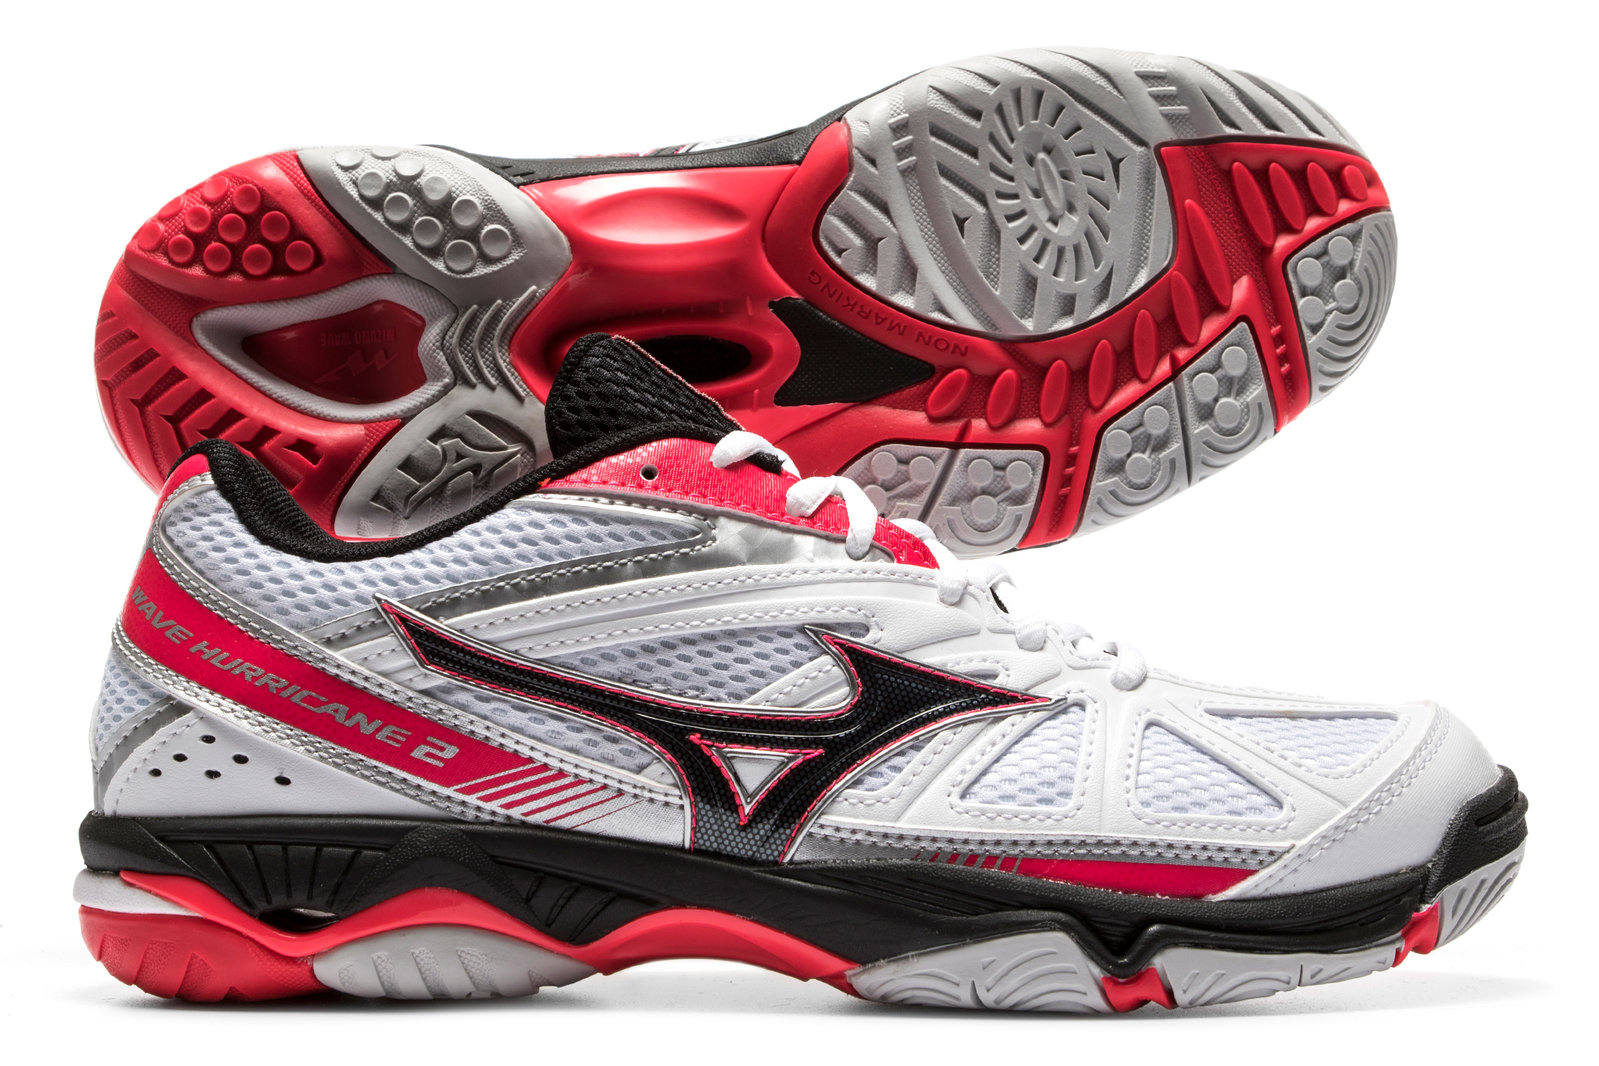 Mizuno Court Shoe Size Up Or Down